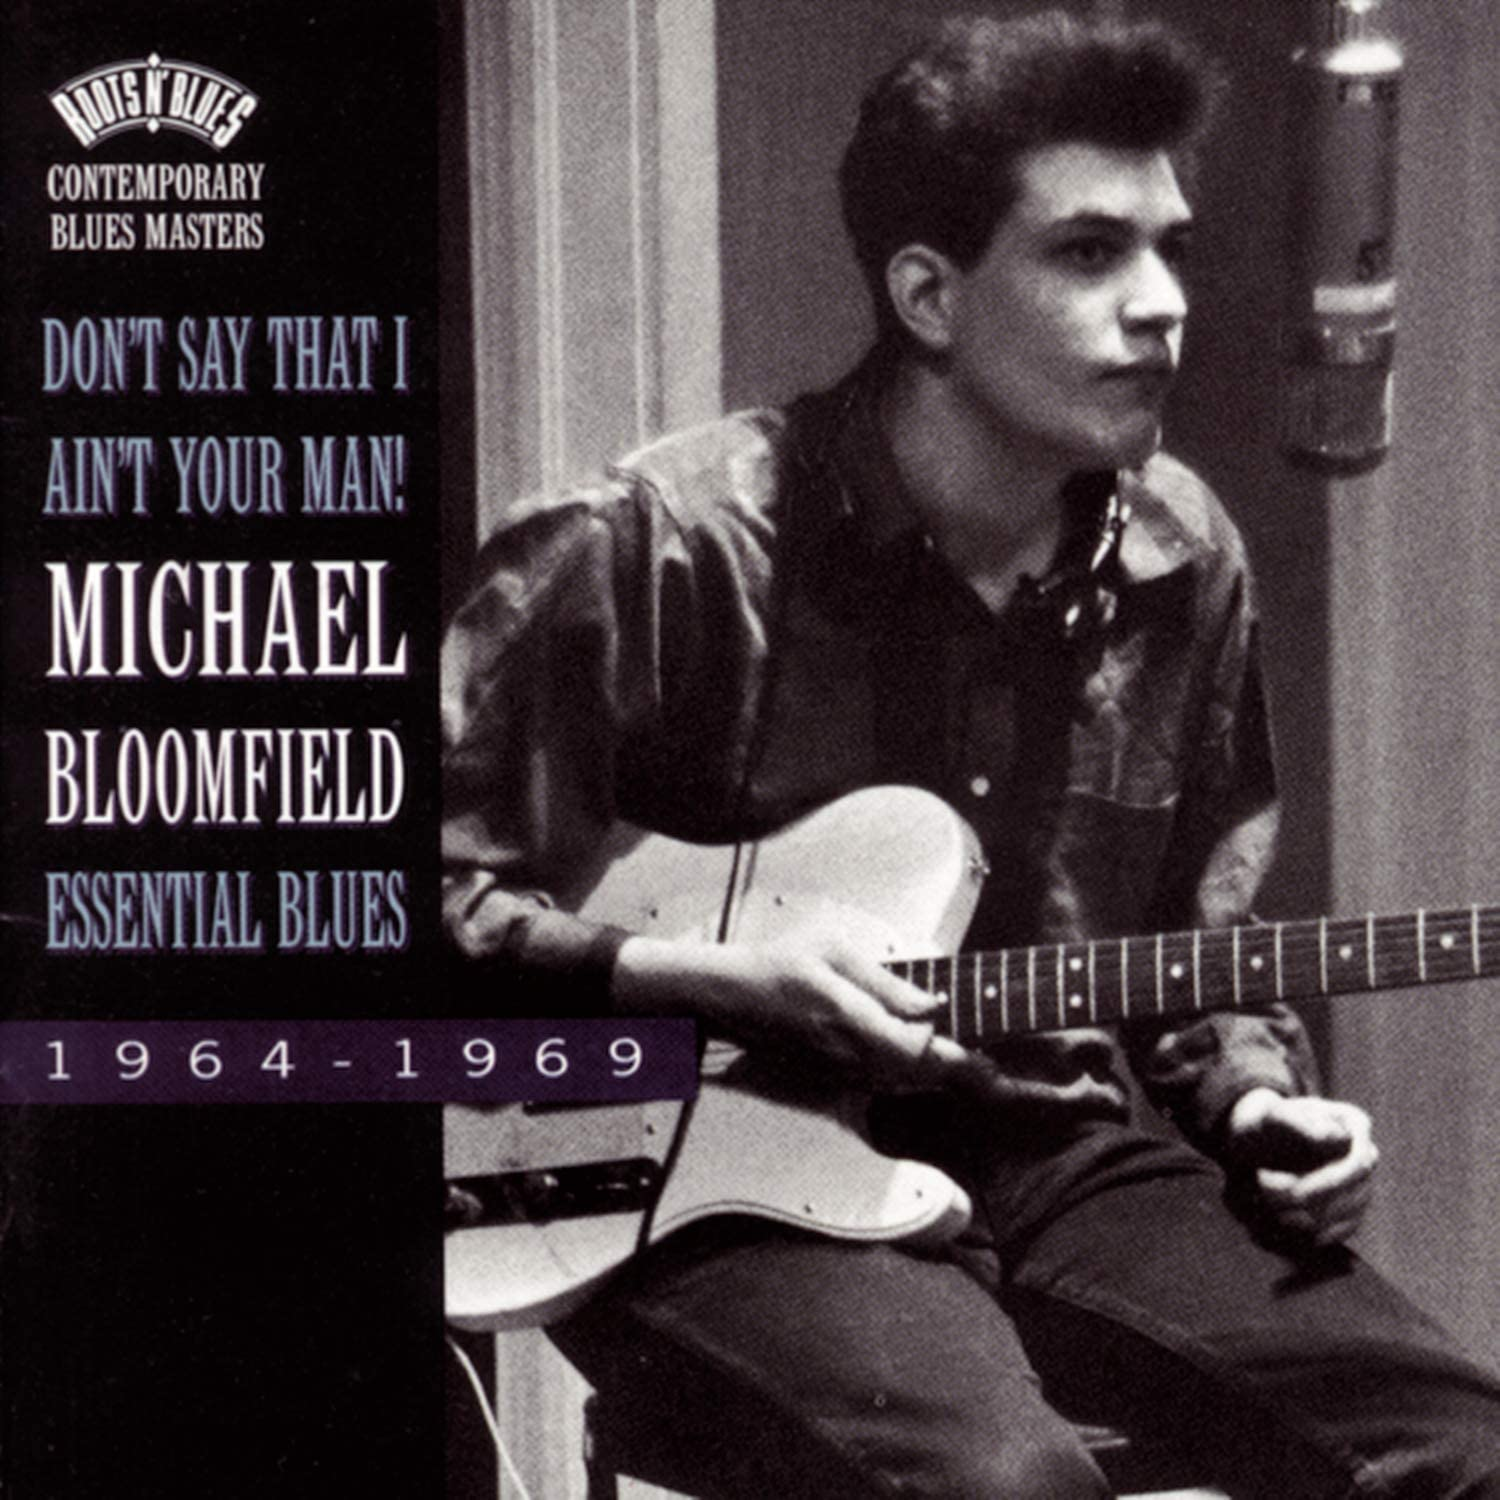 Bloomfield, Michael/Essential Blues 1964-1969 [CD]